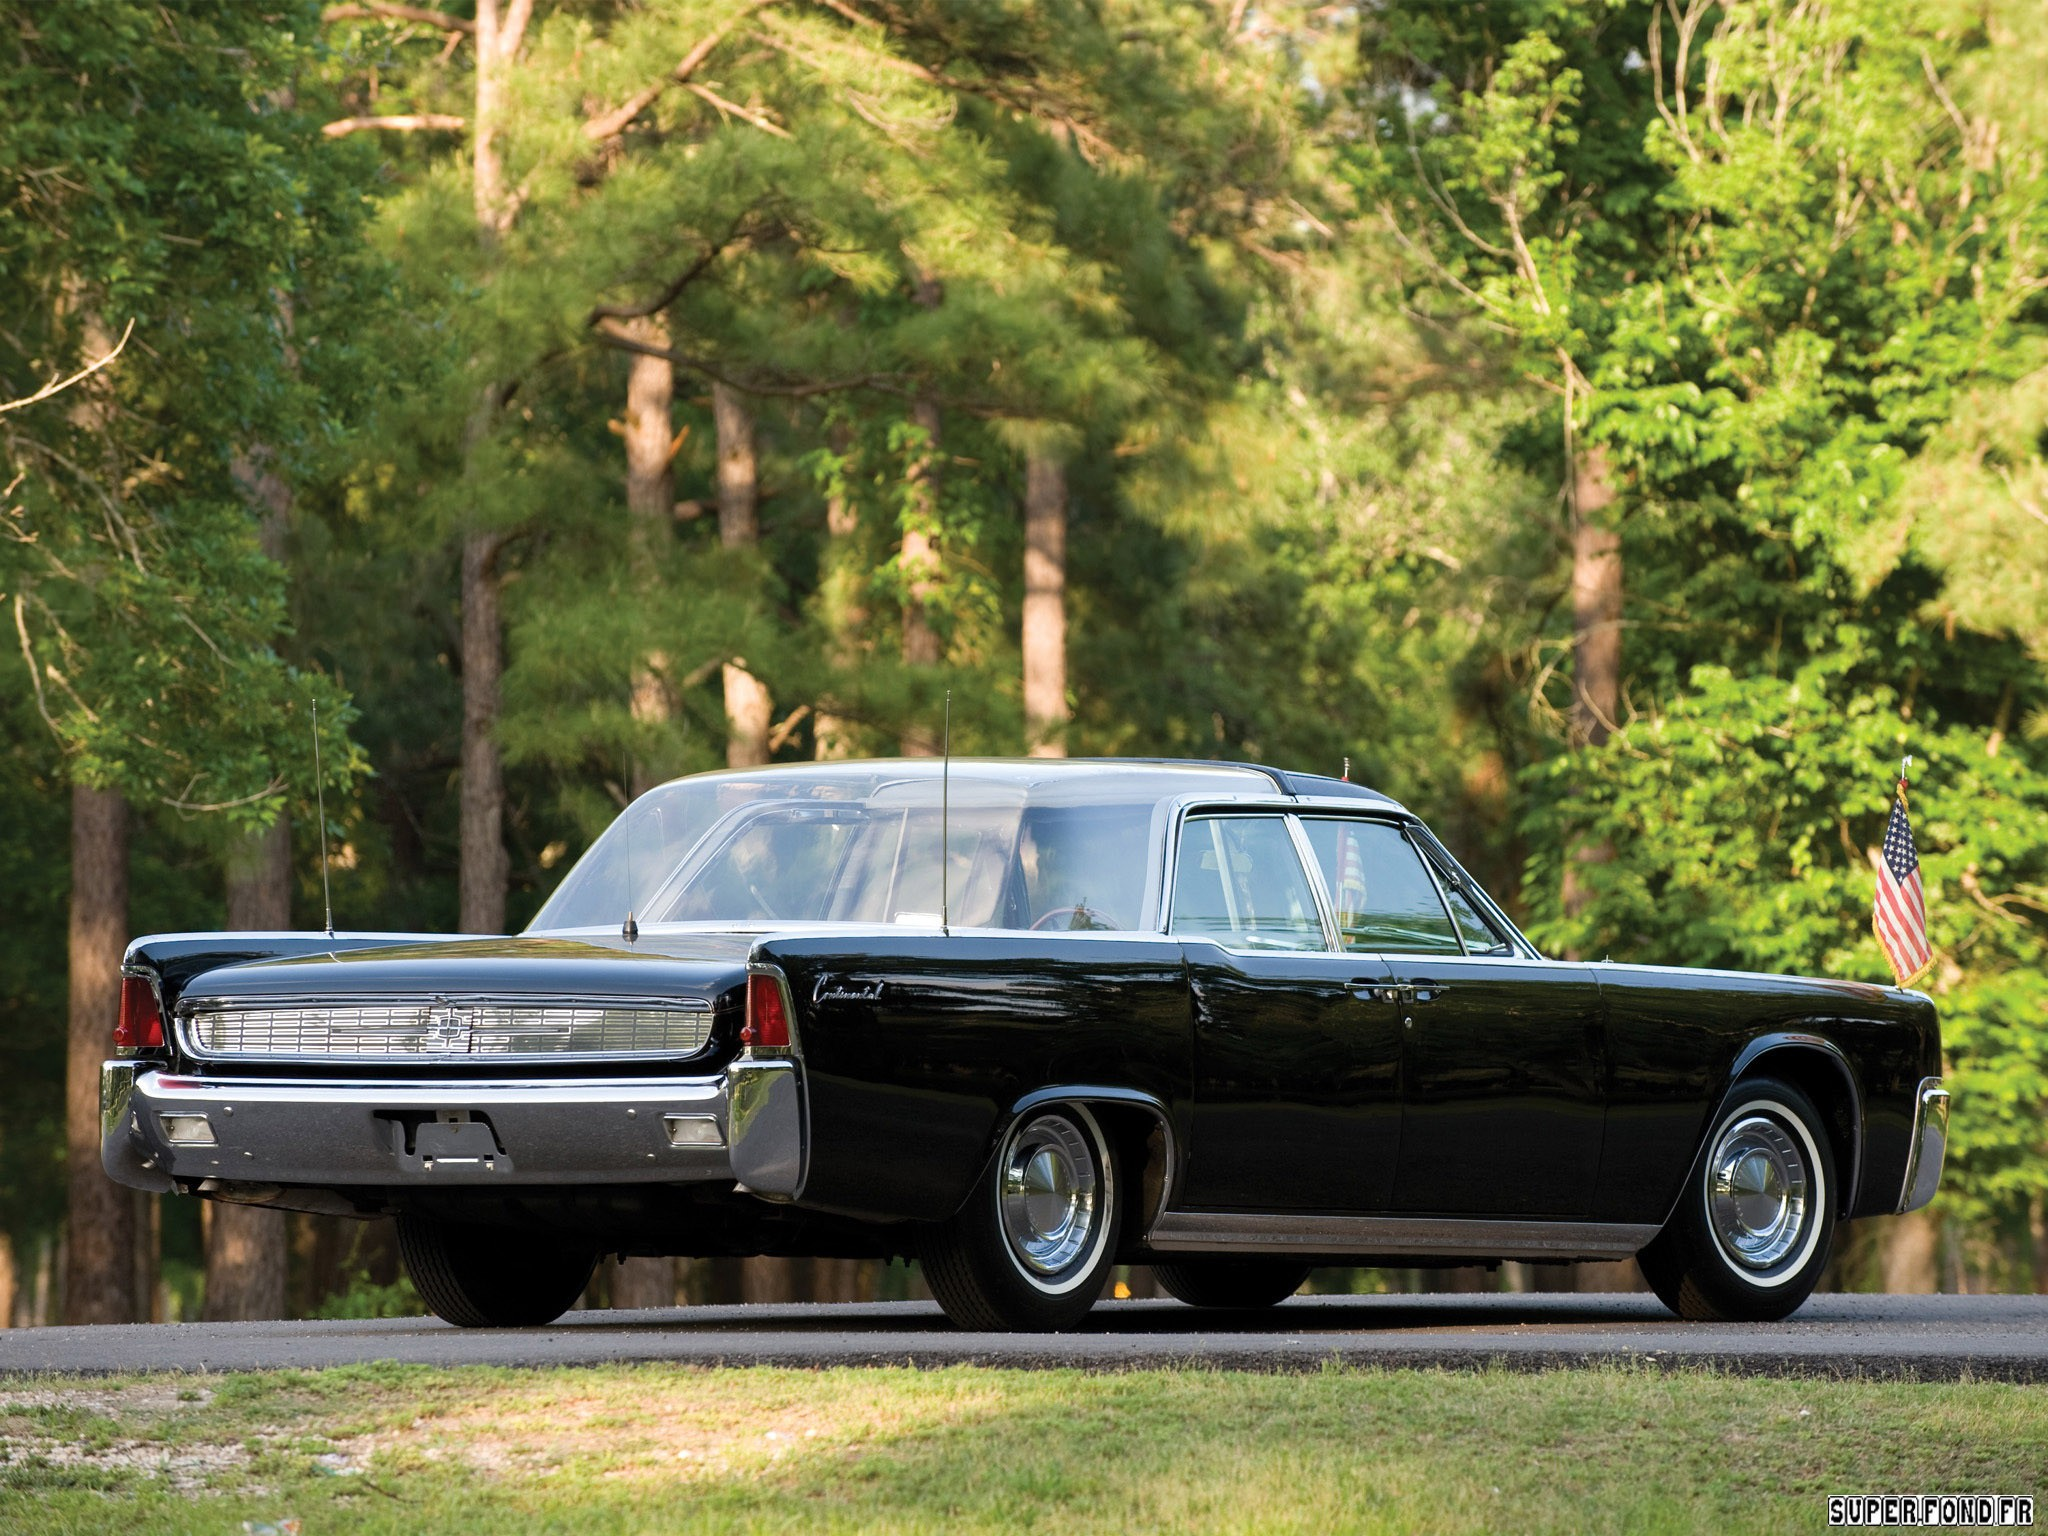 1962 Lincoln Continental Bubbletop Kennedy Limousine